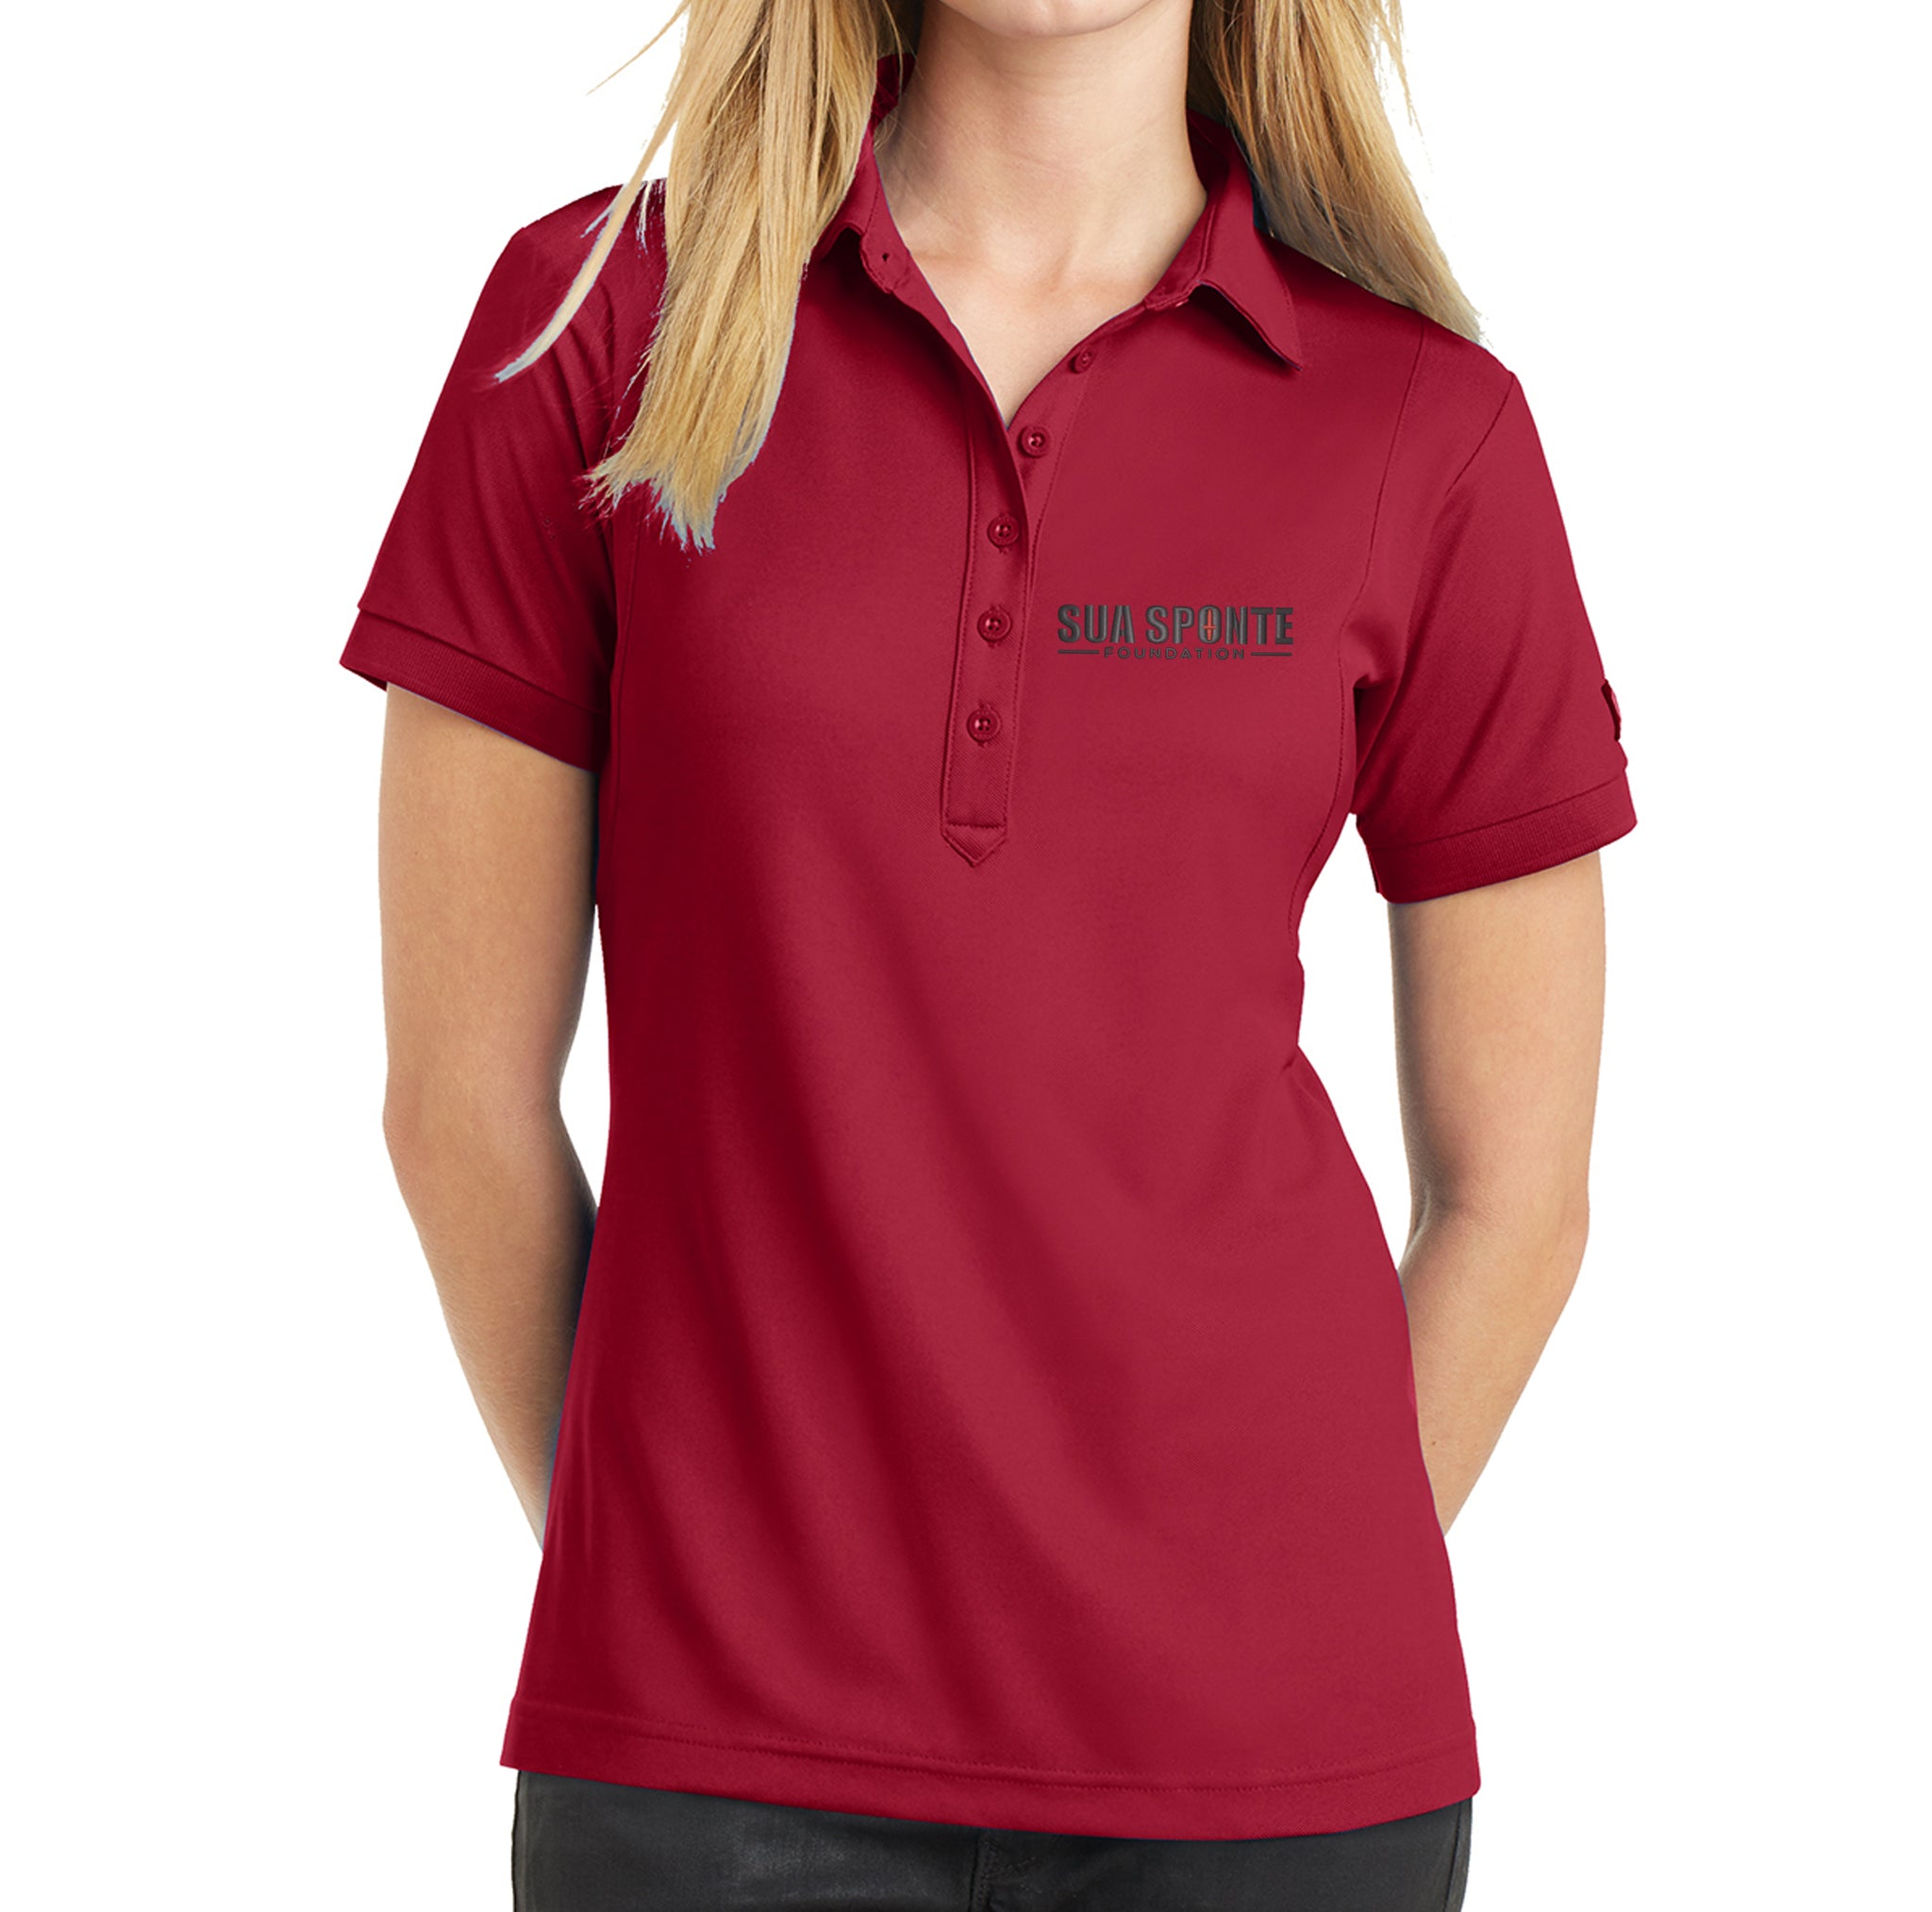 Sua Sponte Foundation Ladies Polo